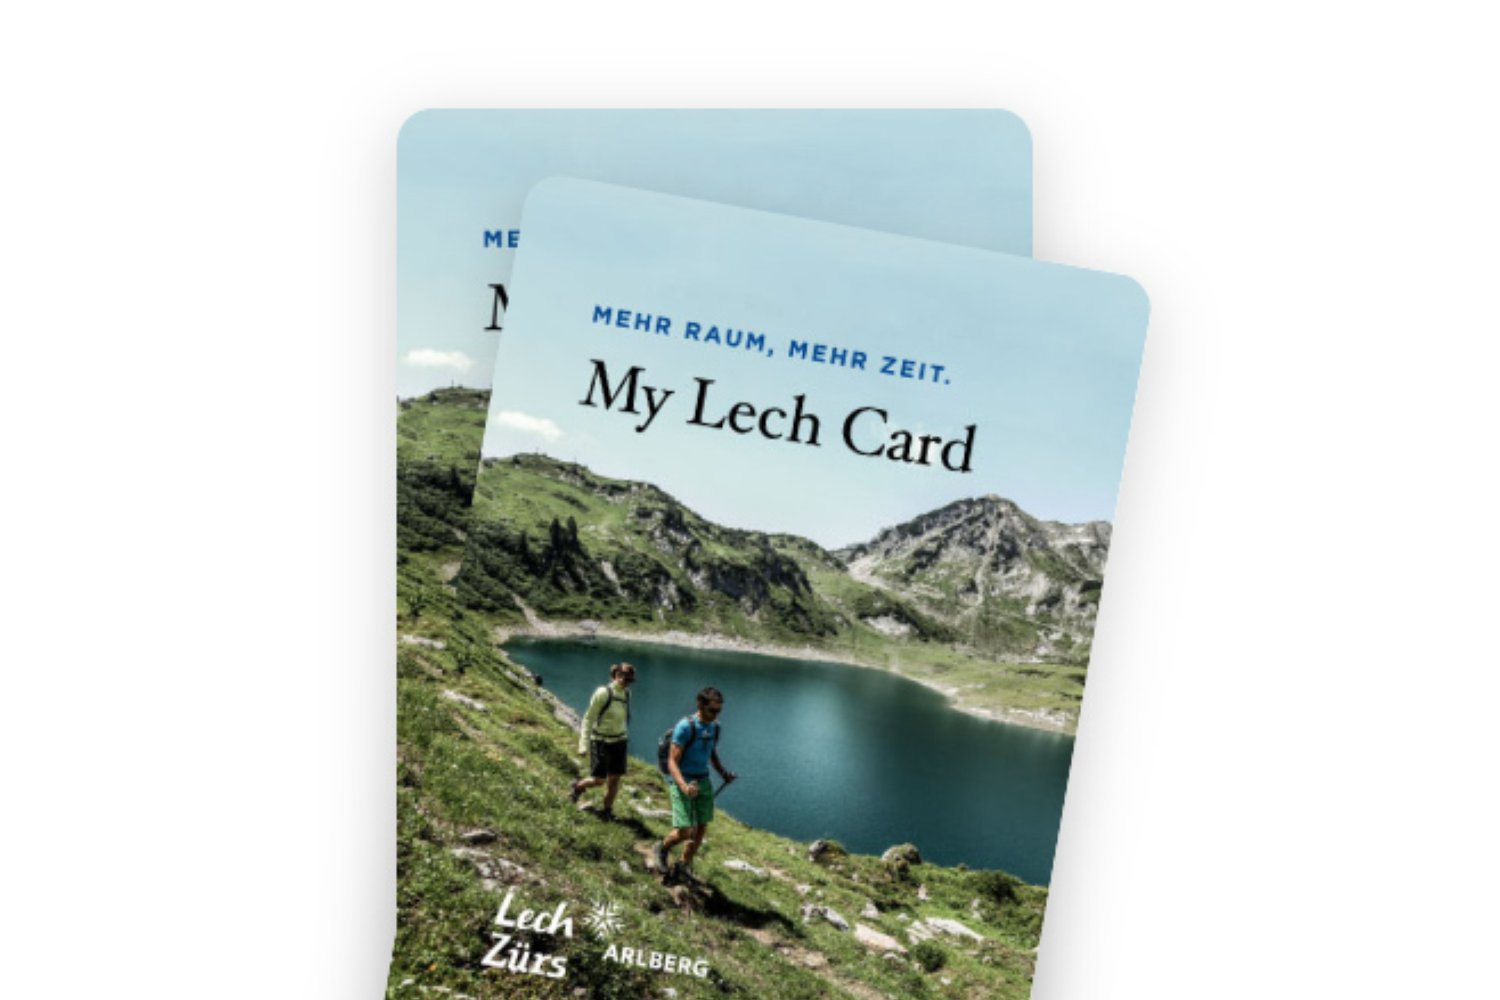 Save money with the Lech Card